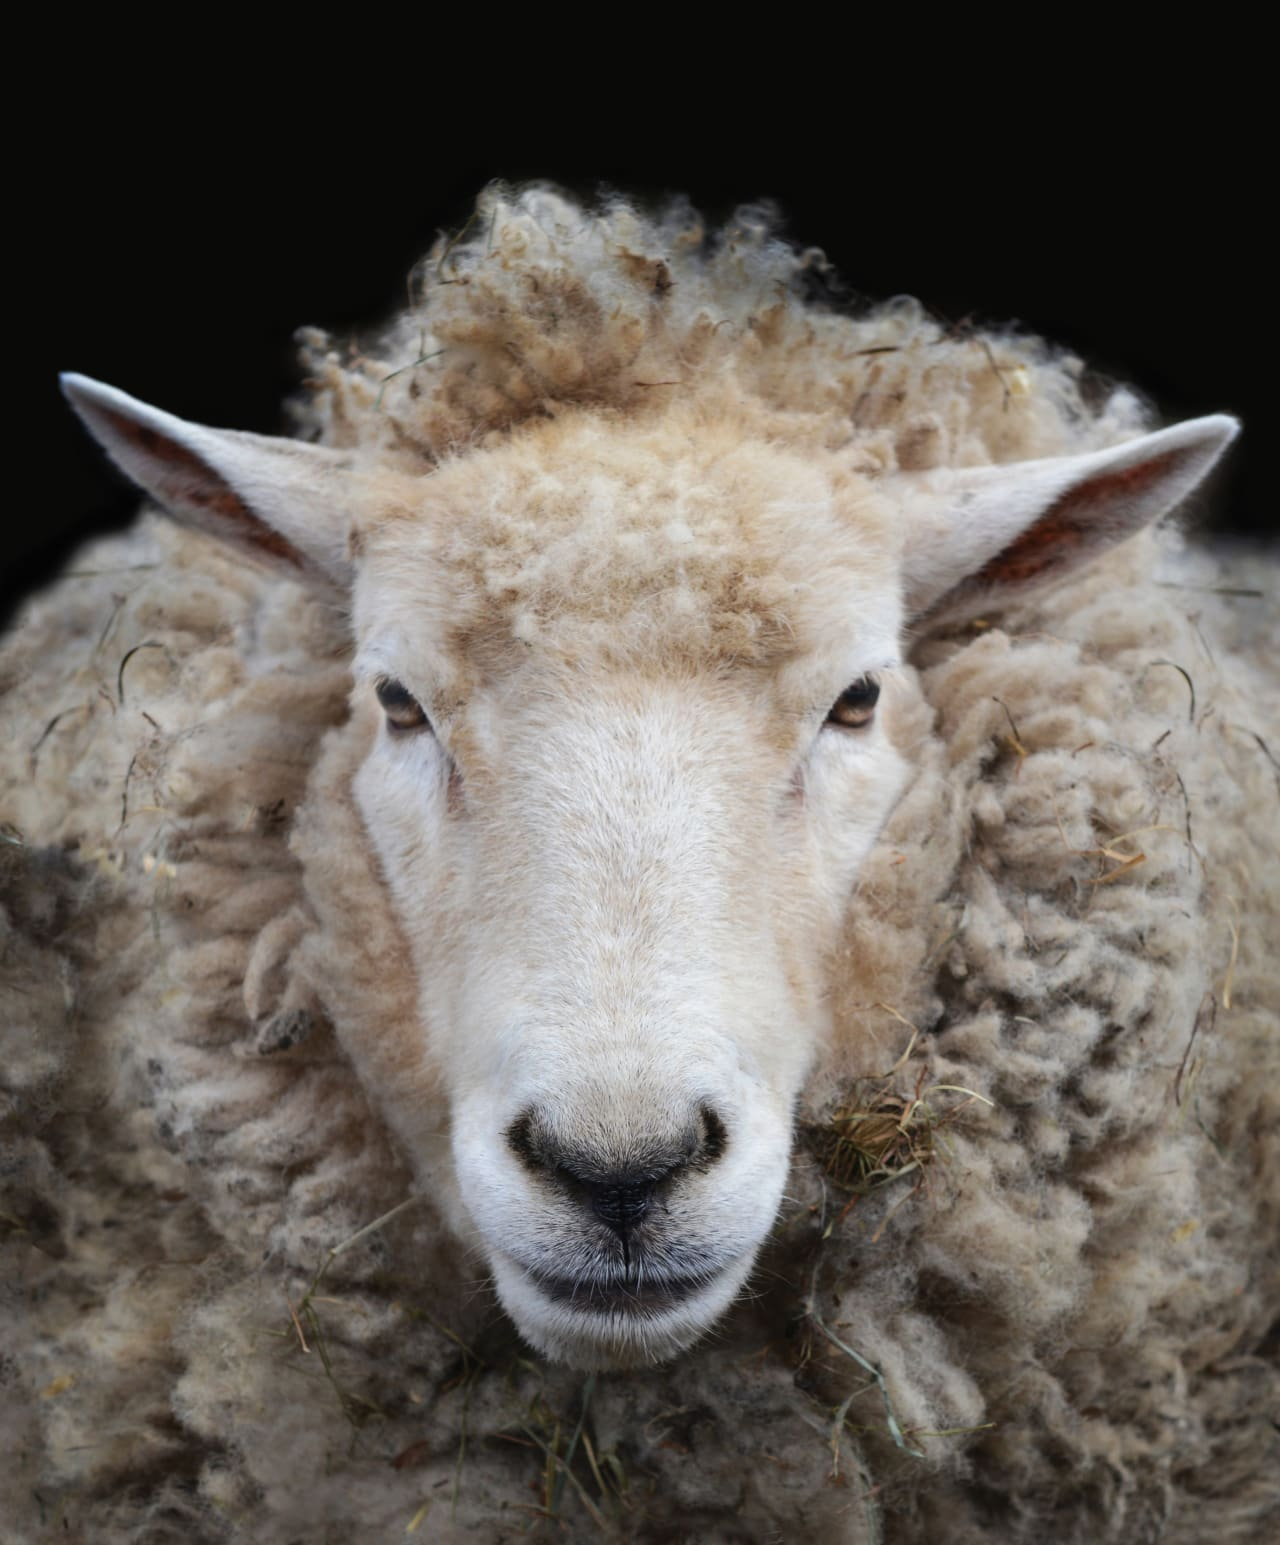 6. Romney Sheep